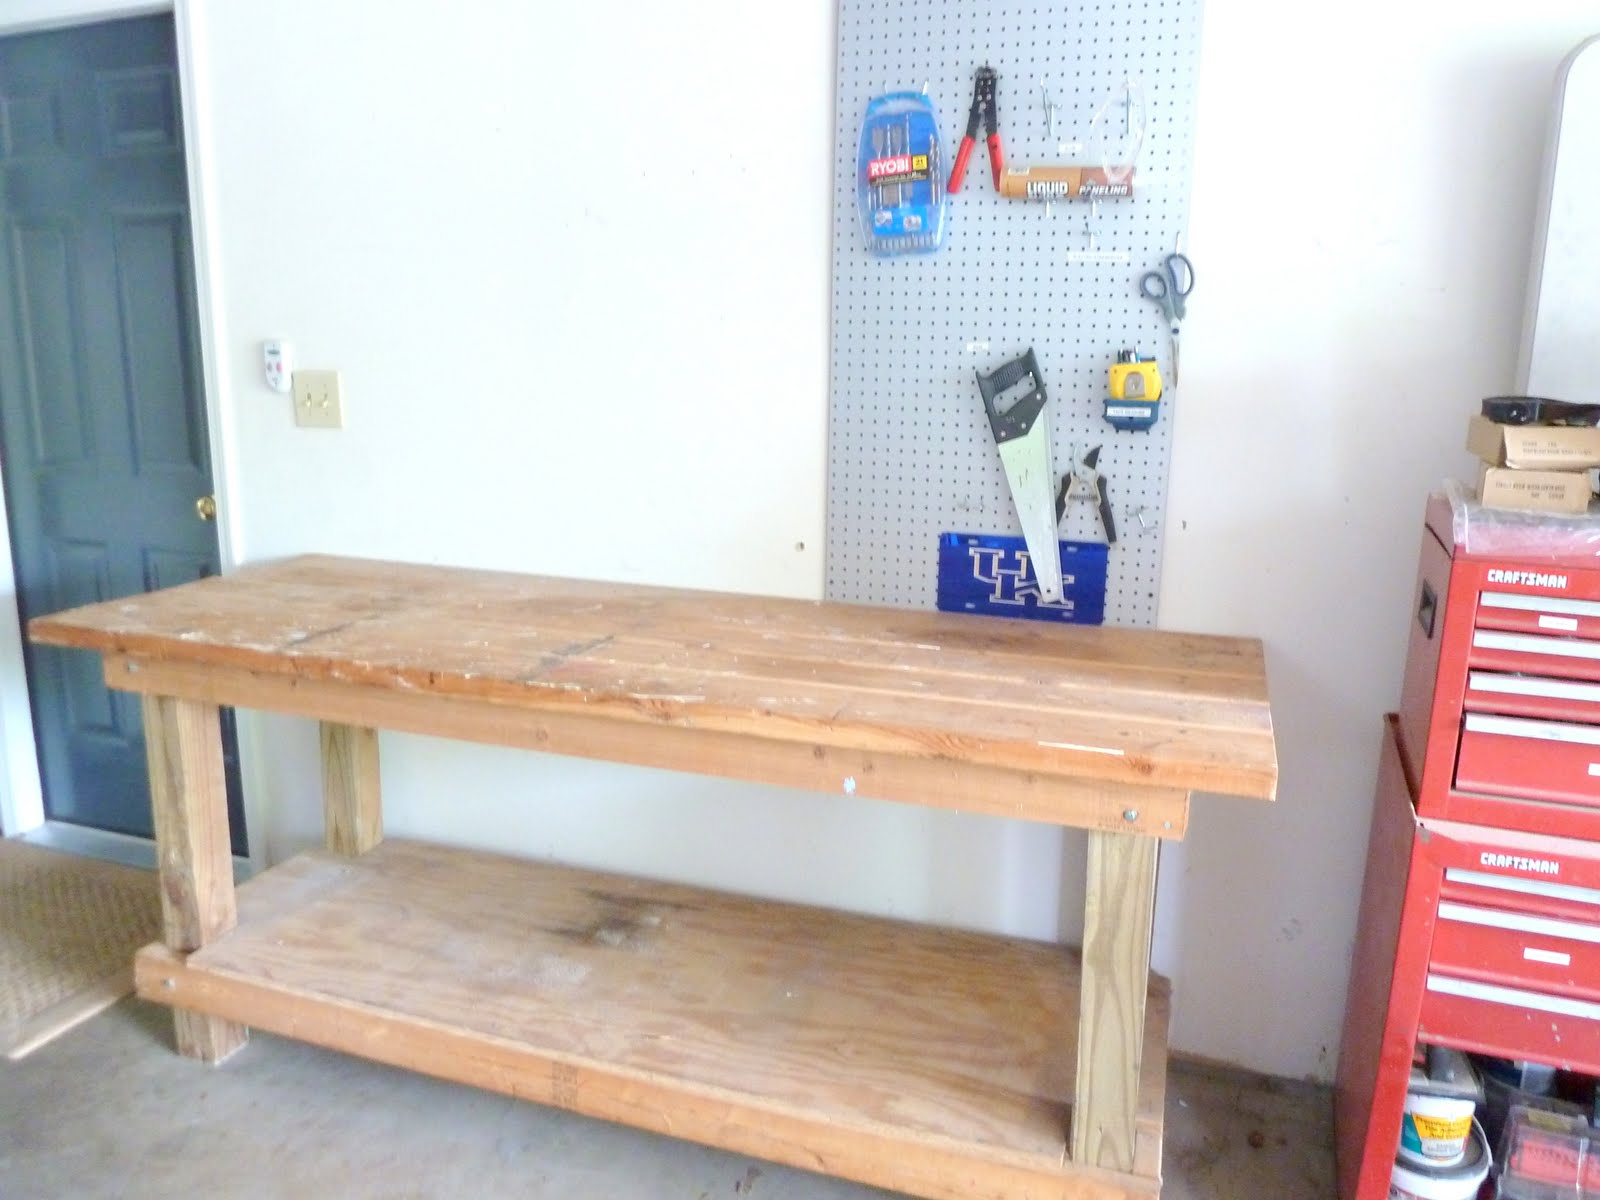 Work Bench Turned Potting Bench